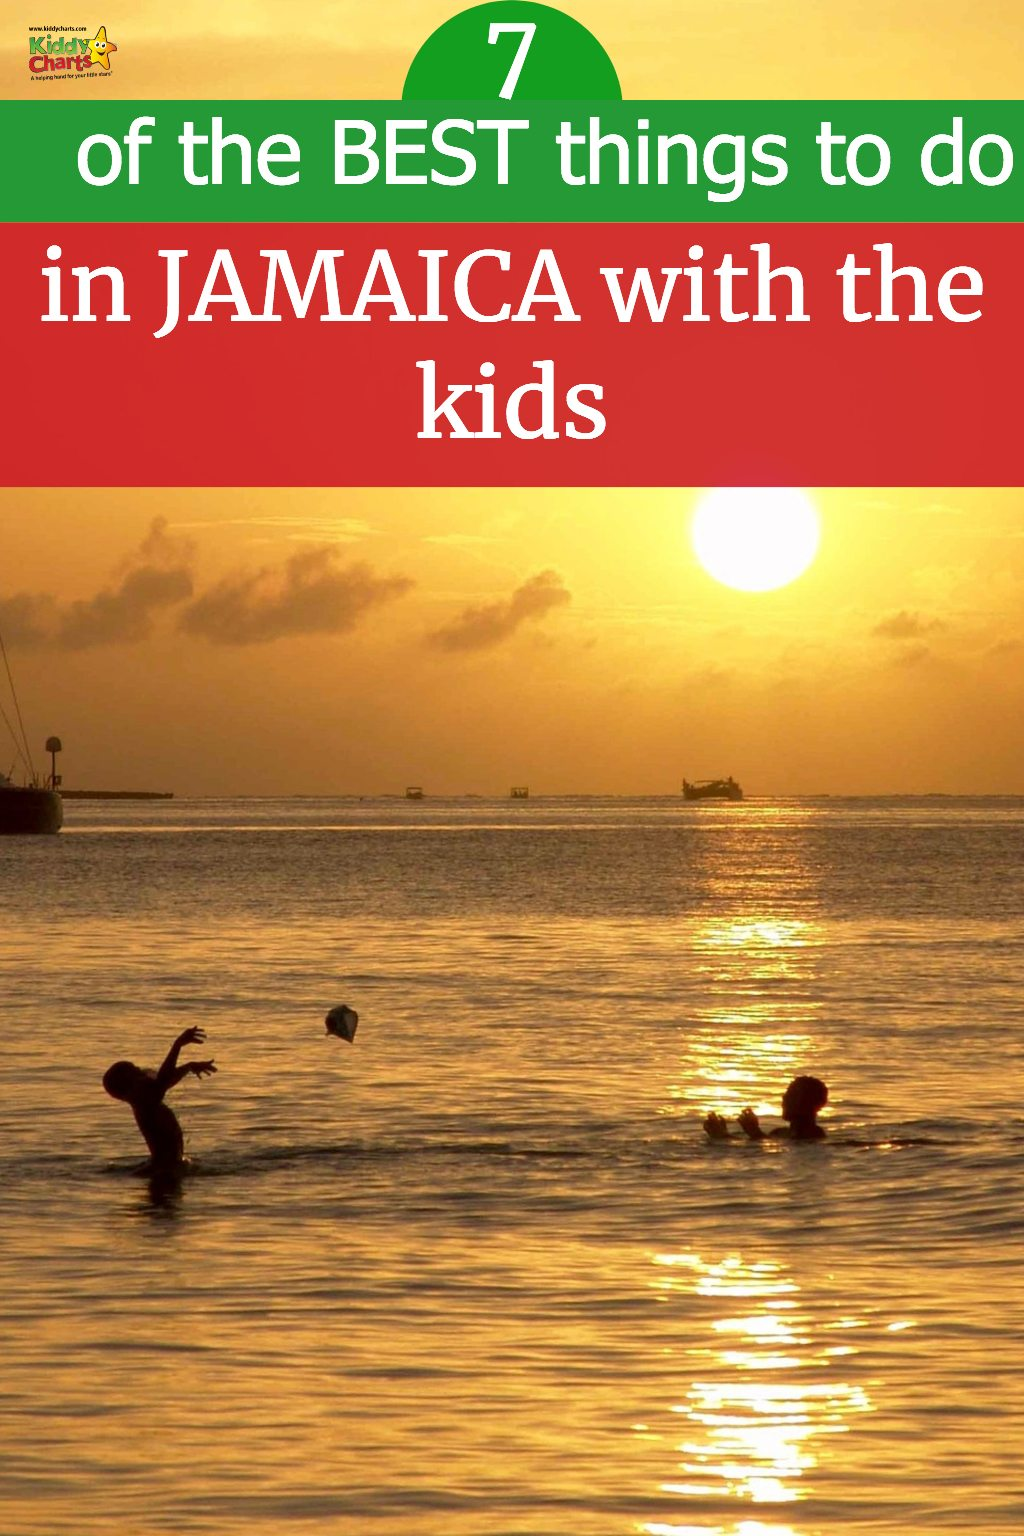 We've taken a little look at the 7 best things to do with kids in Jamaica - so you don't have to! Why not come on in and take a look? #Jamaica #kids #travel